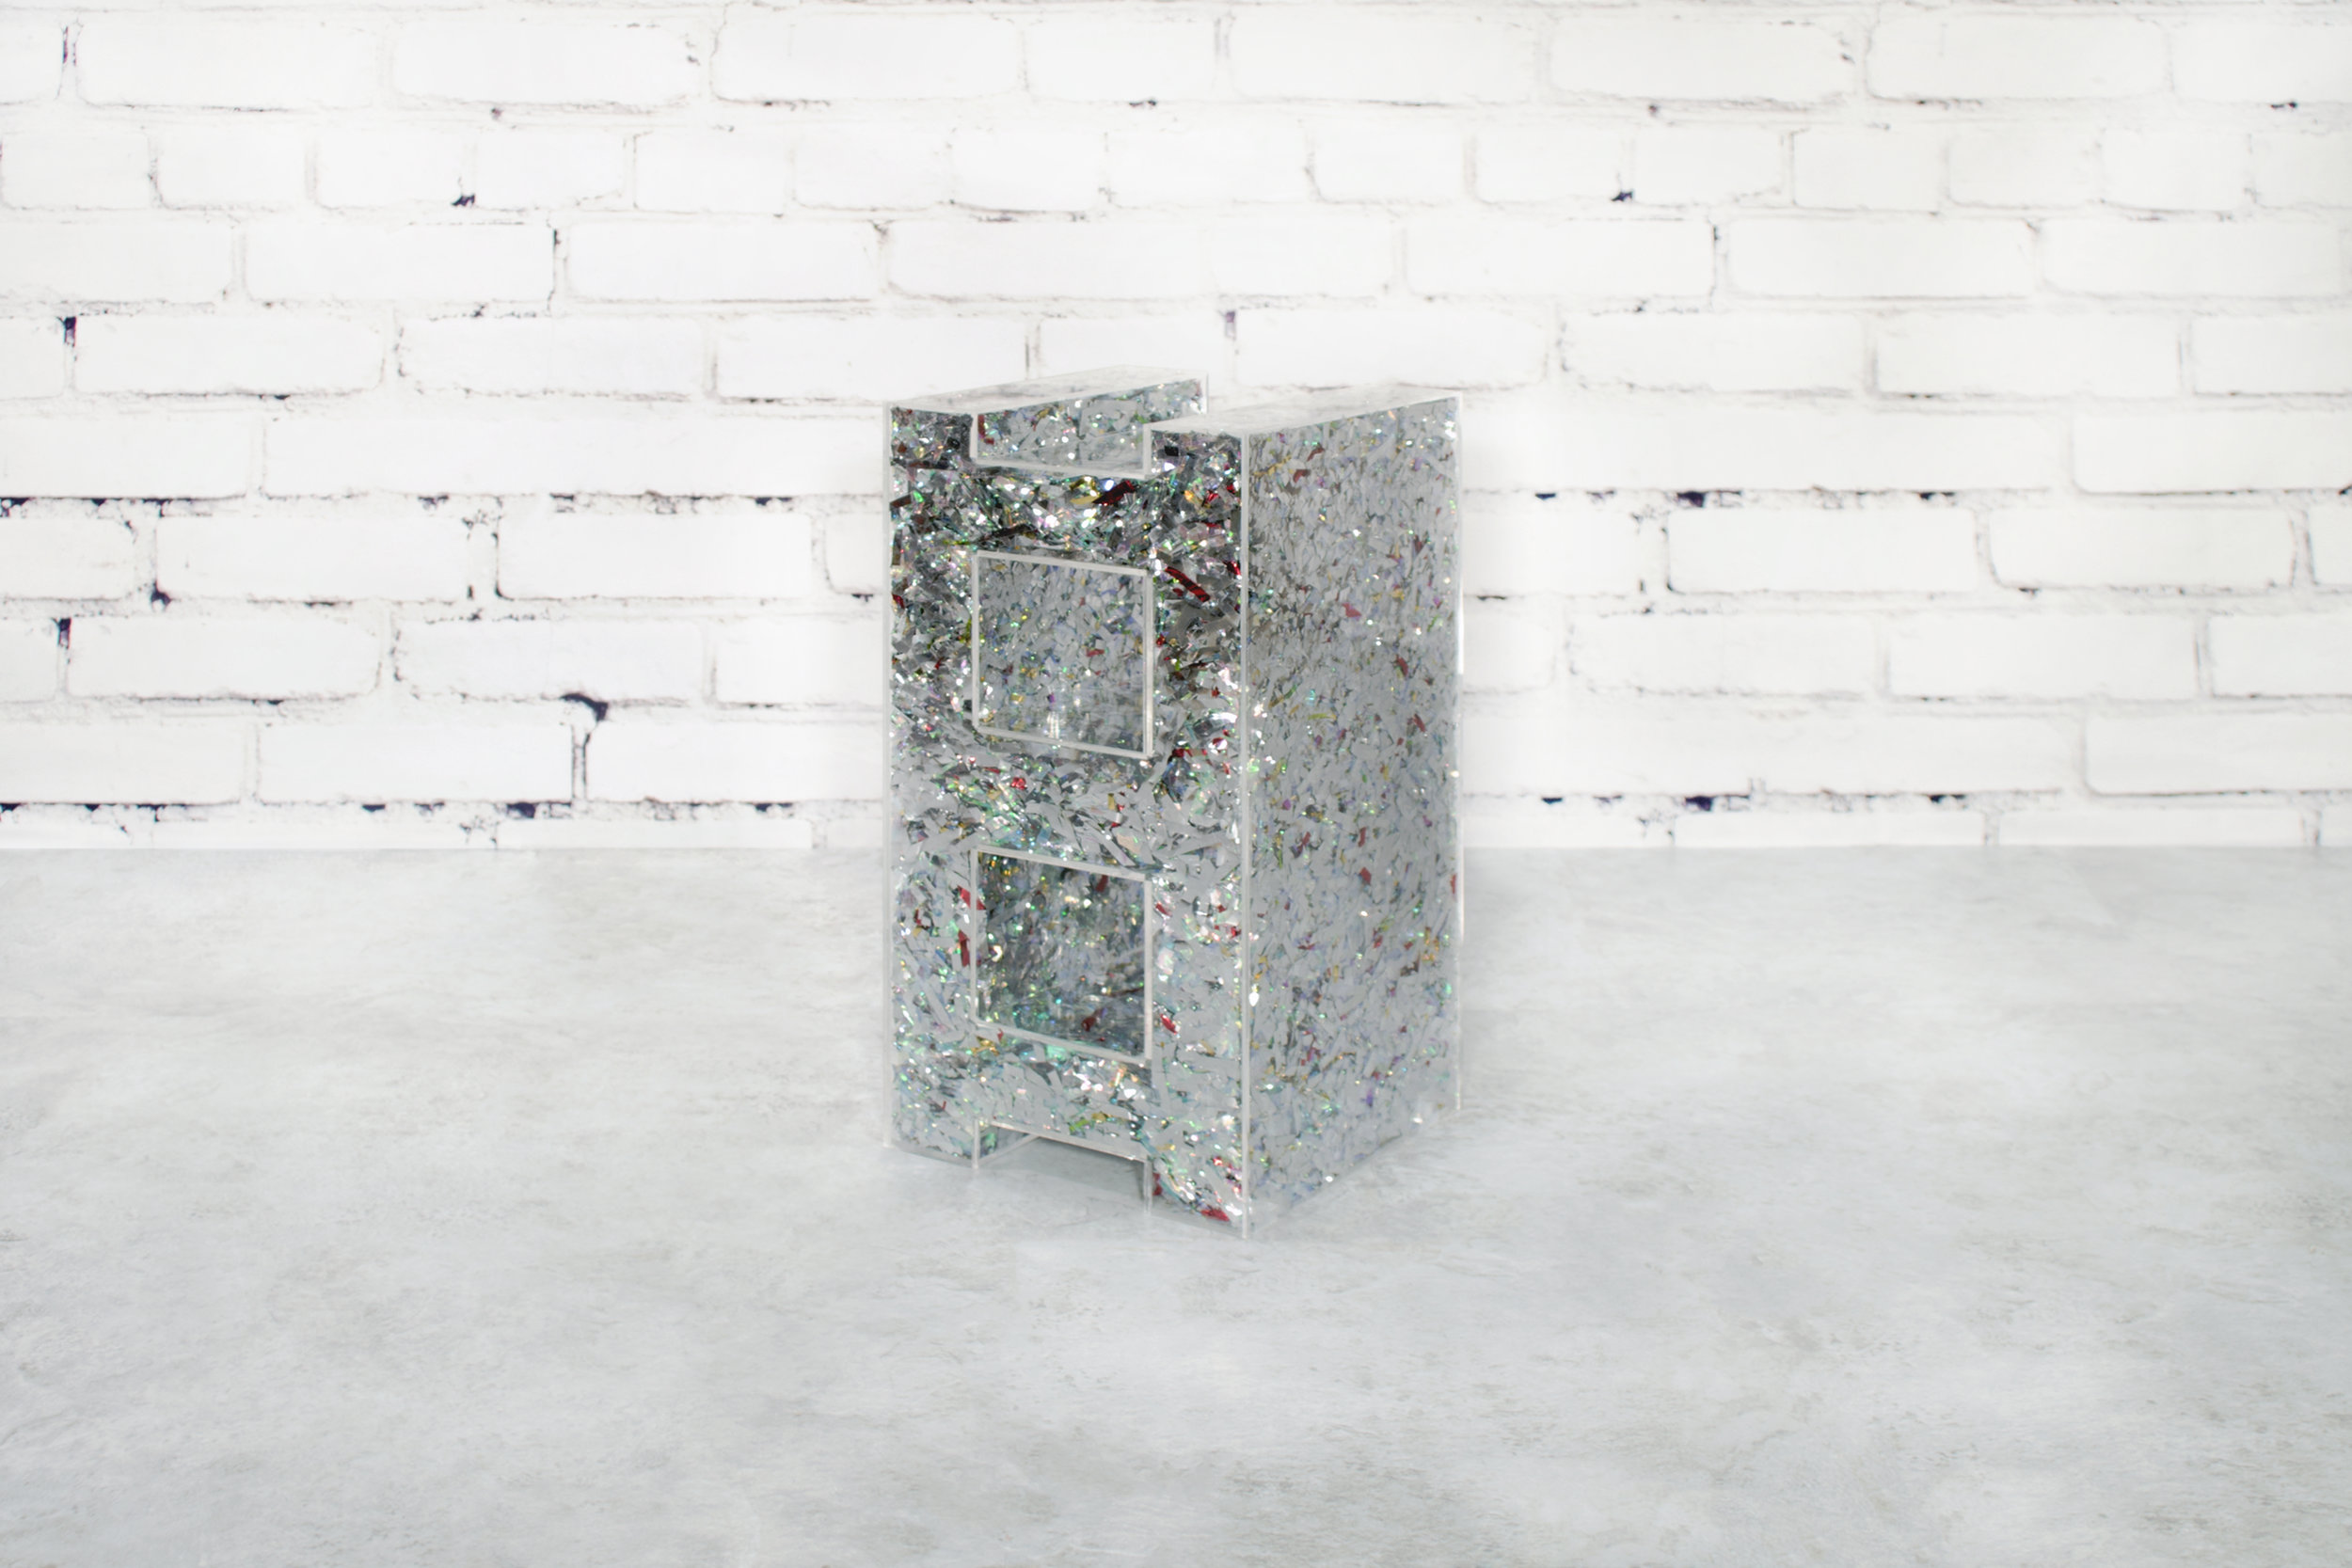 a foiled block